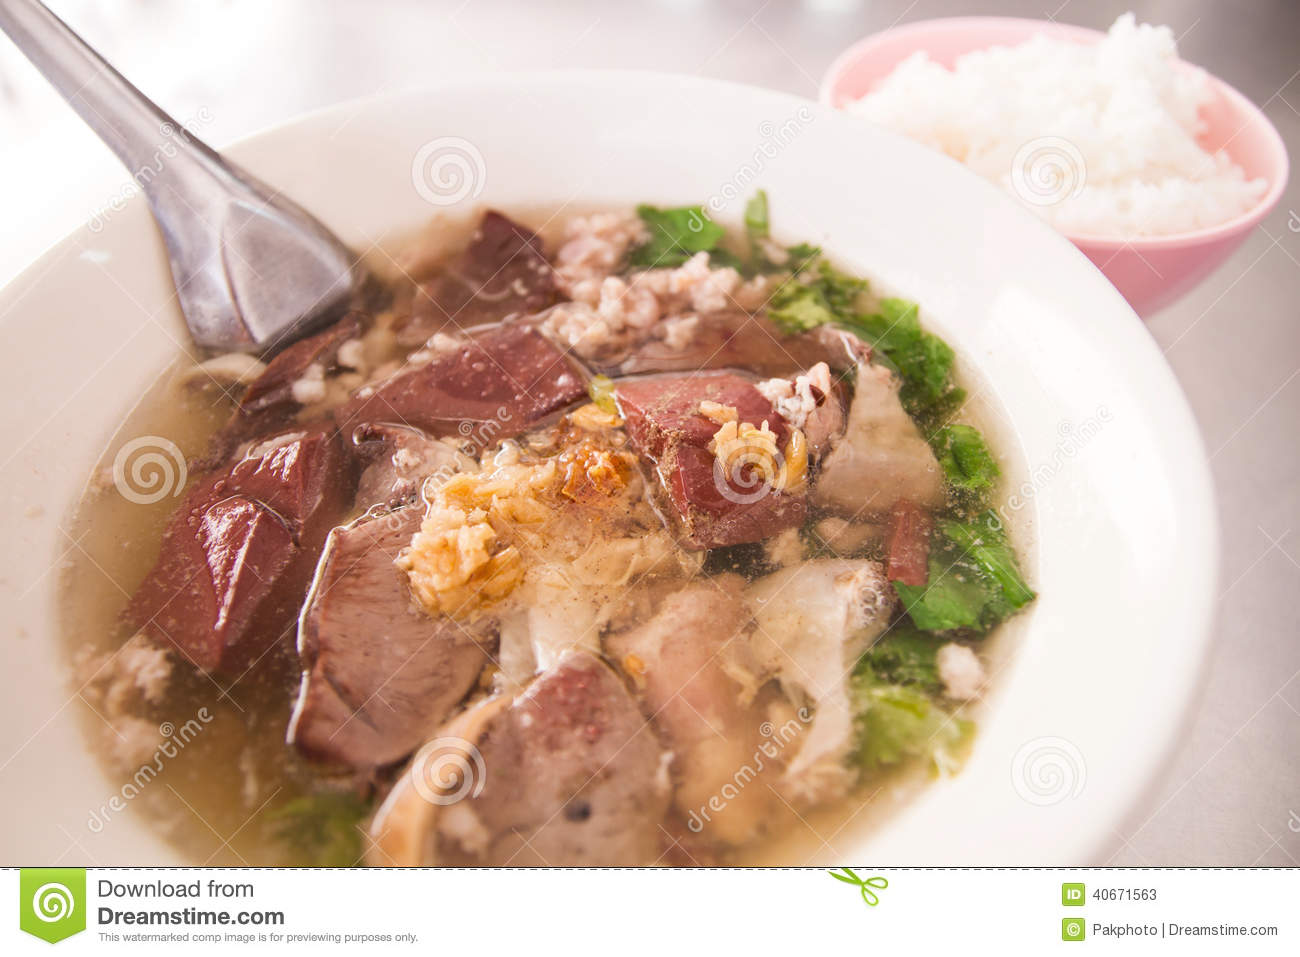 Pork Blood Soup In The Bowl Stock Photo - Image: 40671563